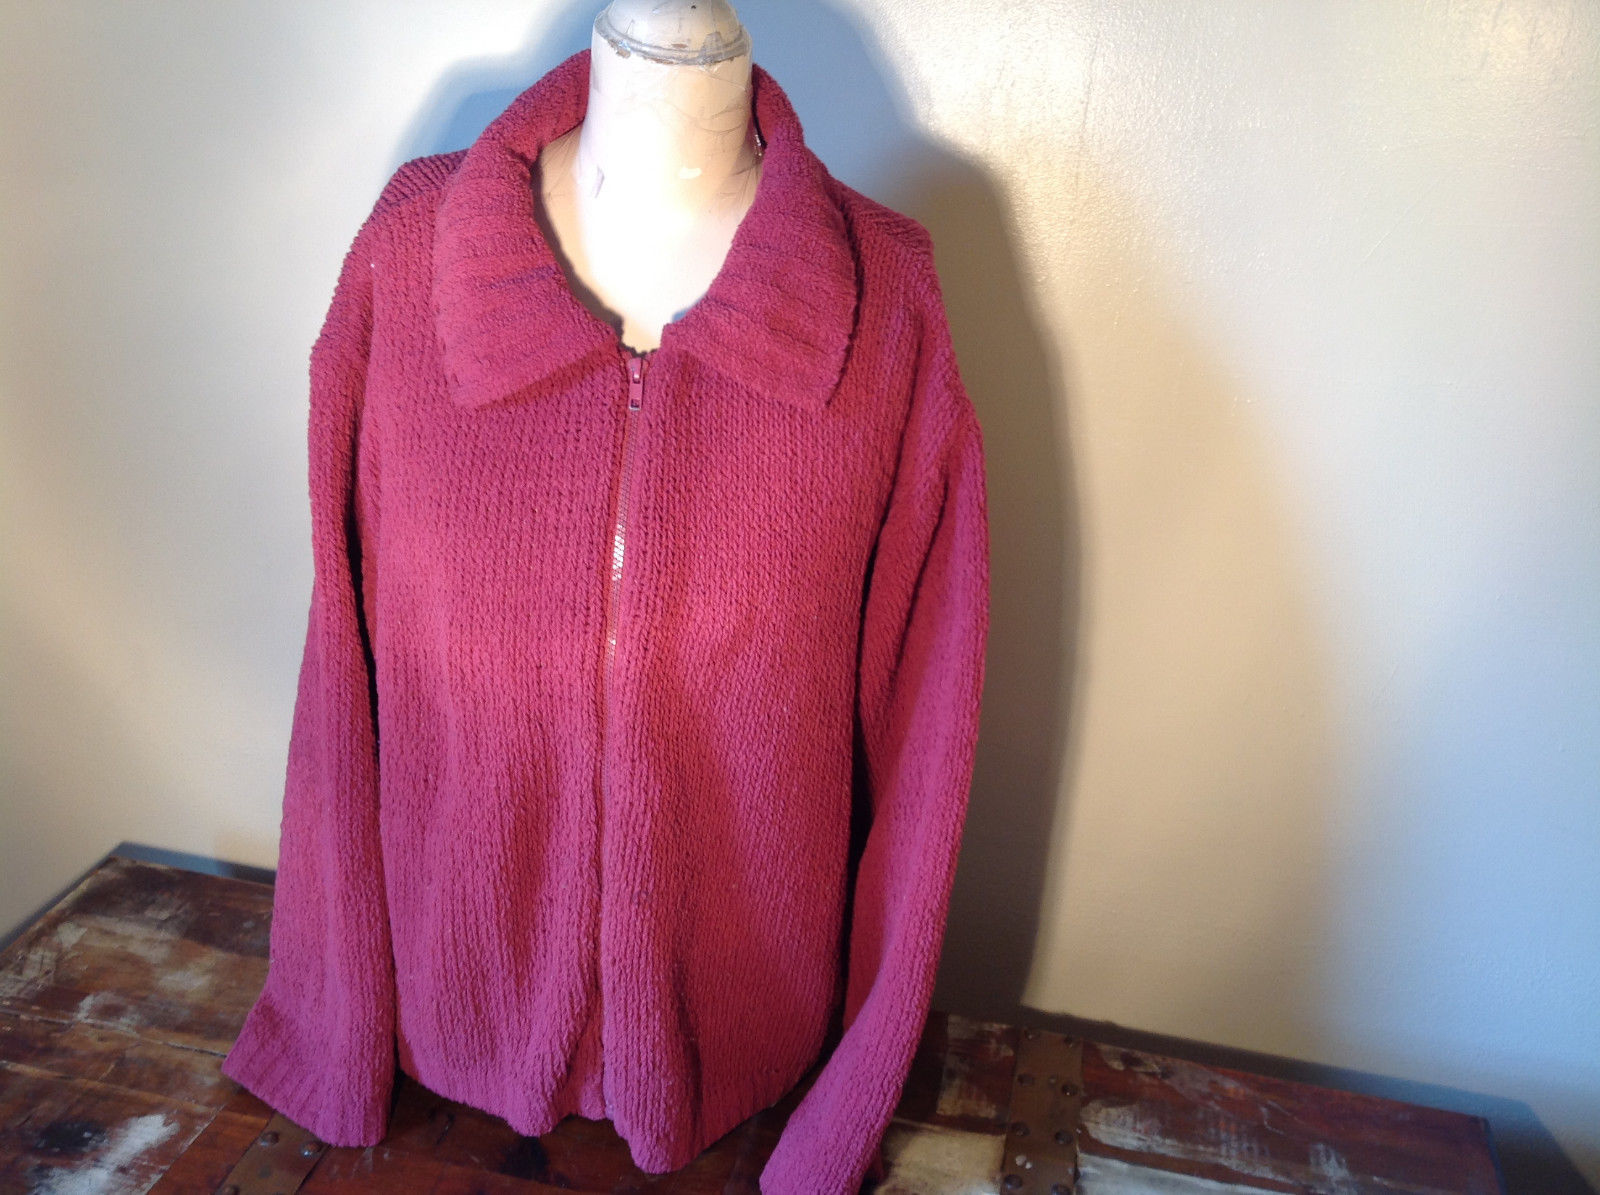 Dark Pink Long Sleeve Zip Up Dressbarn Sweater Very Soft and Comfortable